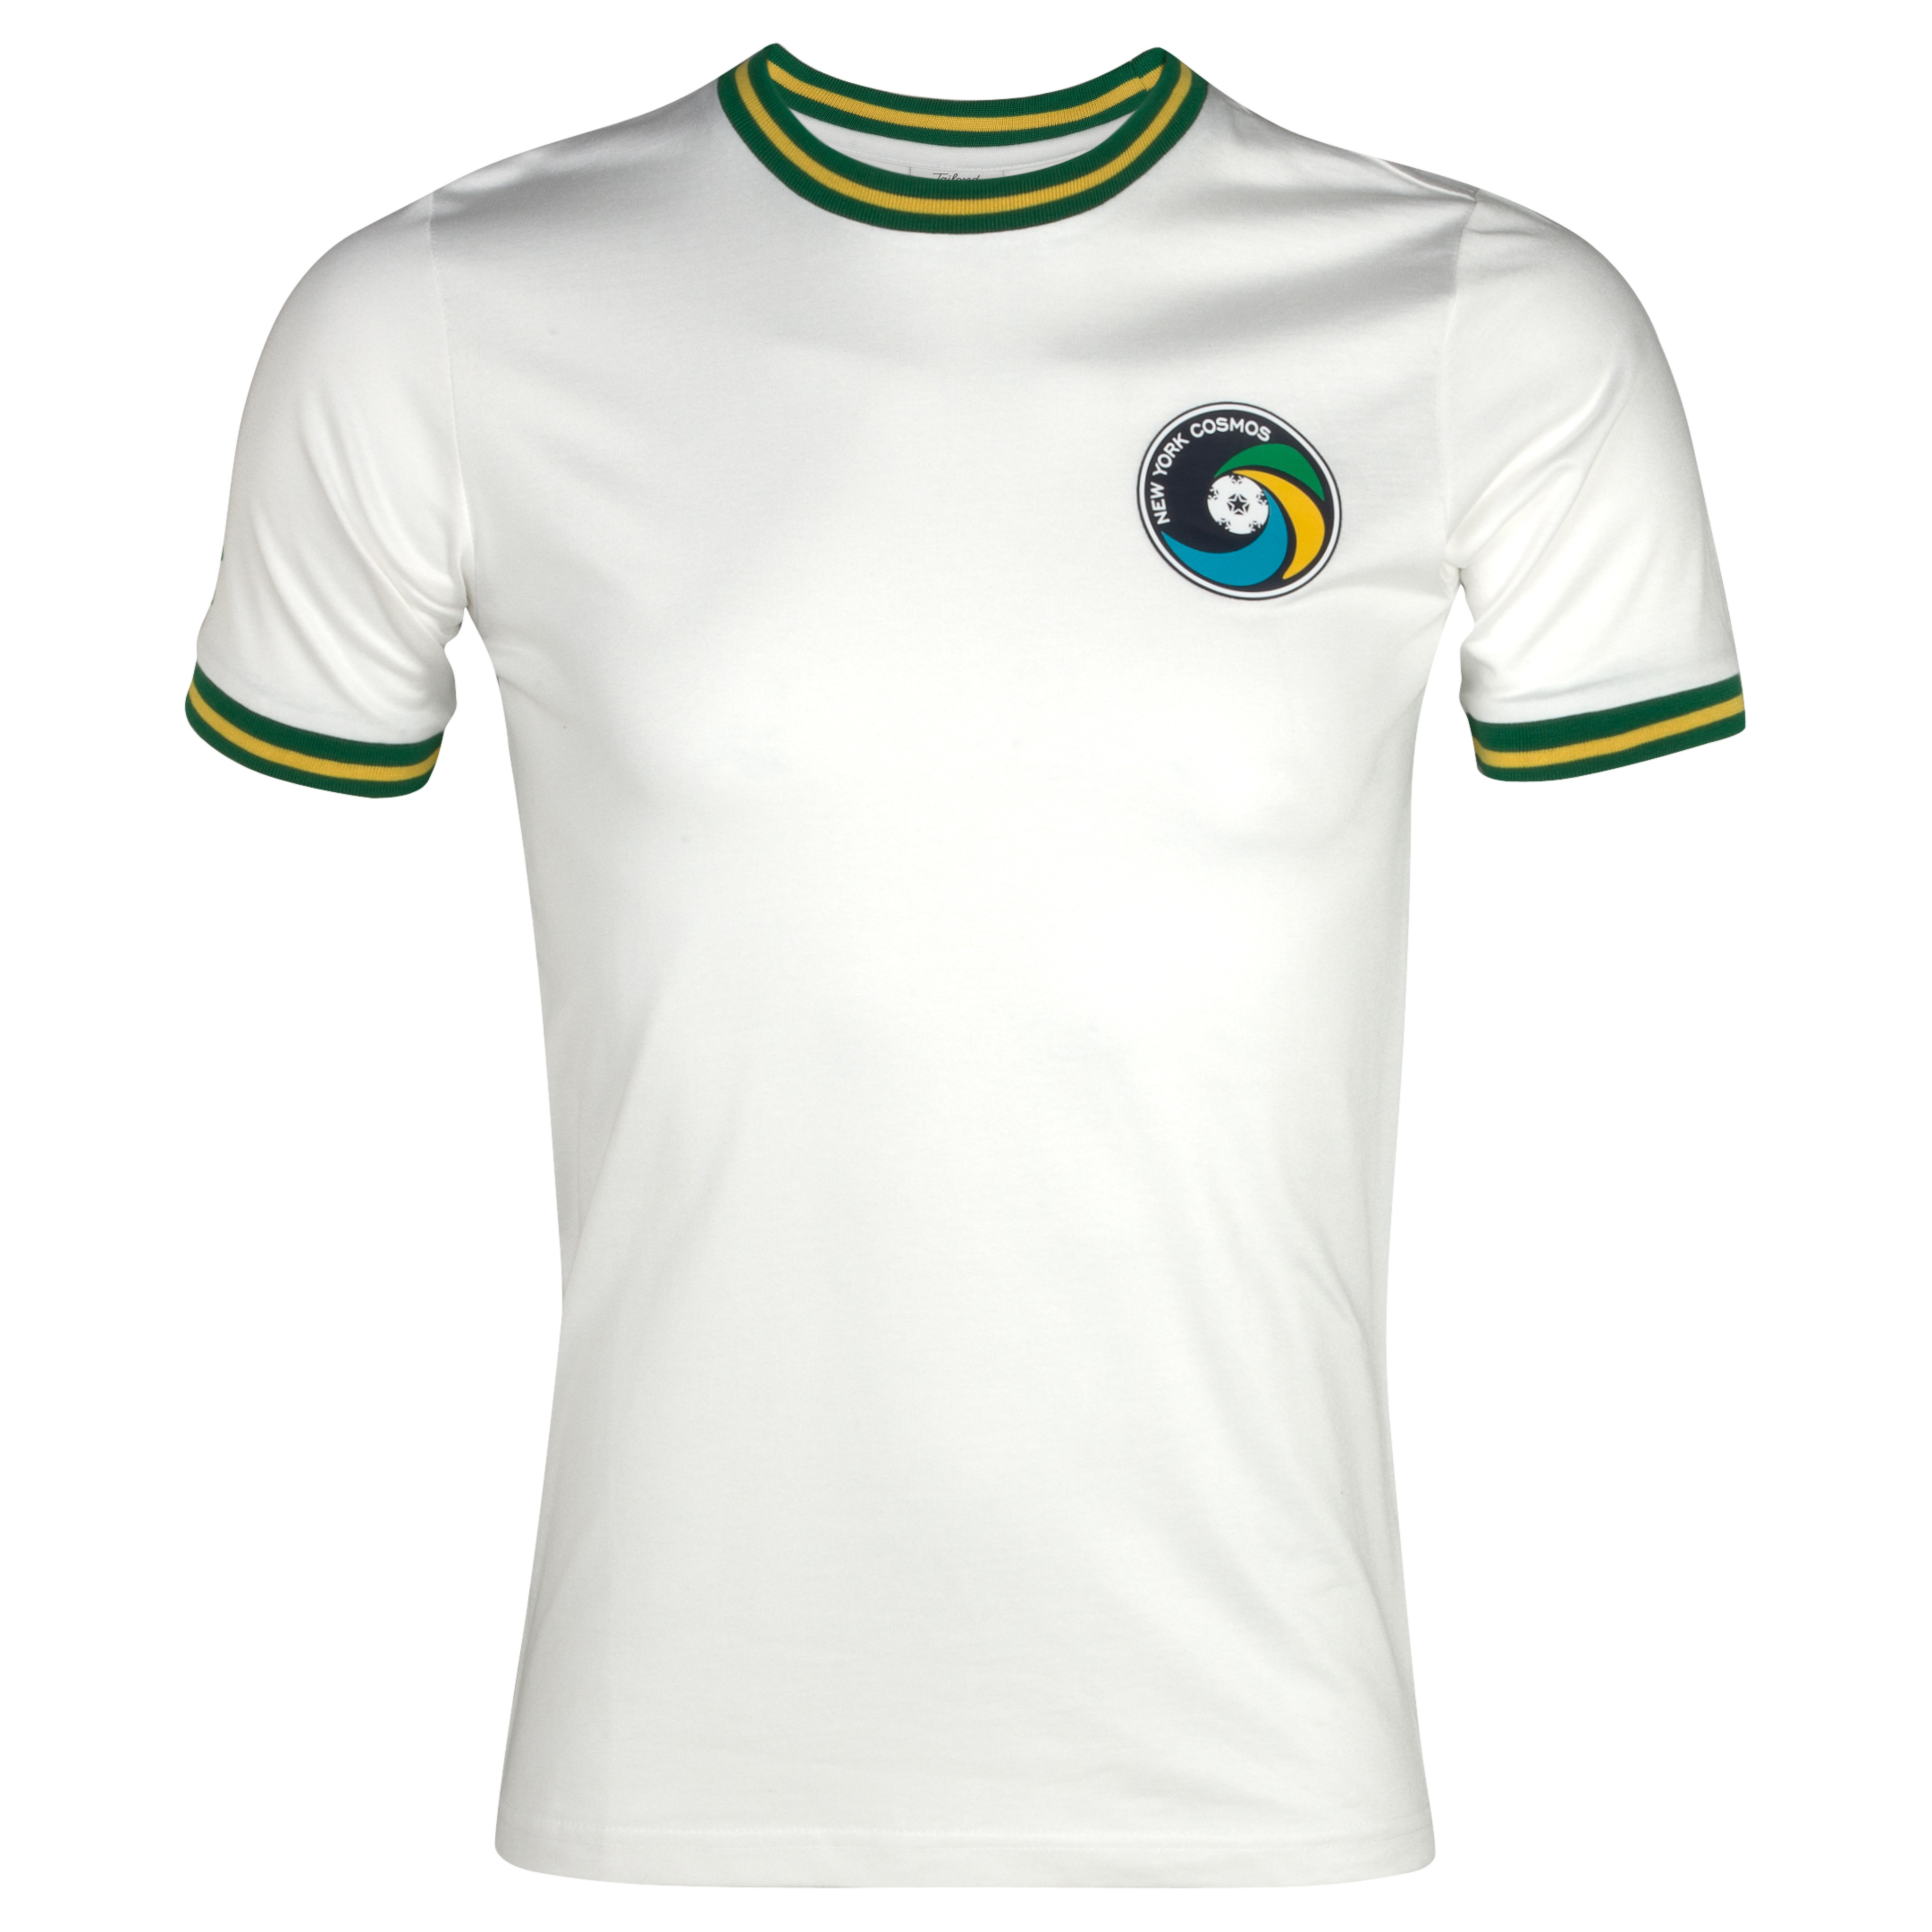 New York Cosmos 75' Vintage Jersey - White